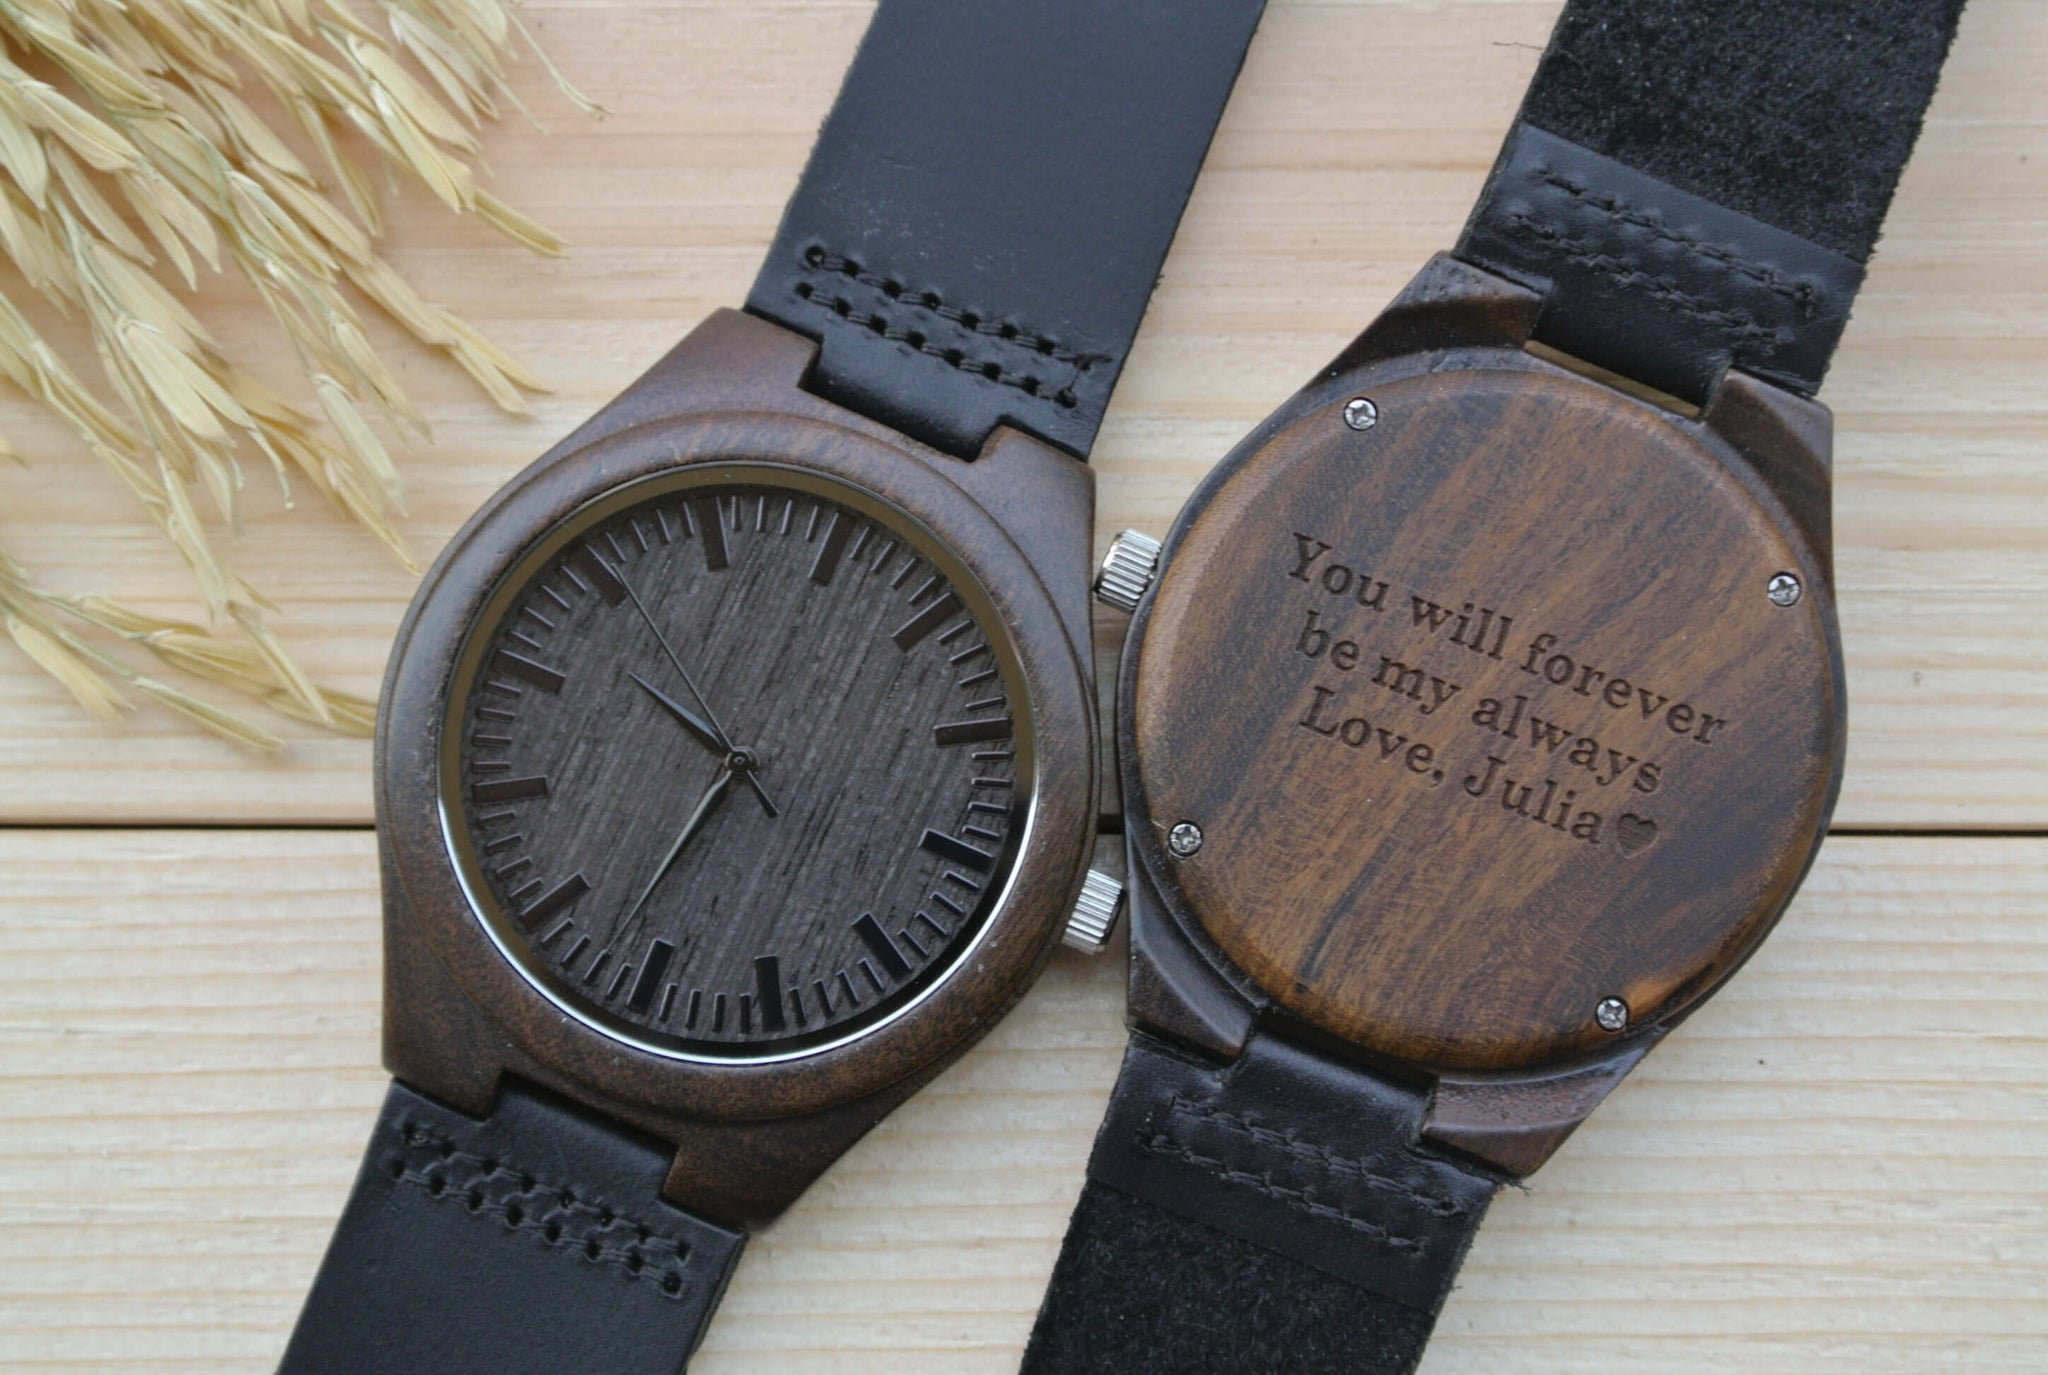 male from in modern quartz item wristwatch sandalwood strap genuine wooden leather casual watches compass face pattern nature men creative